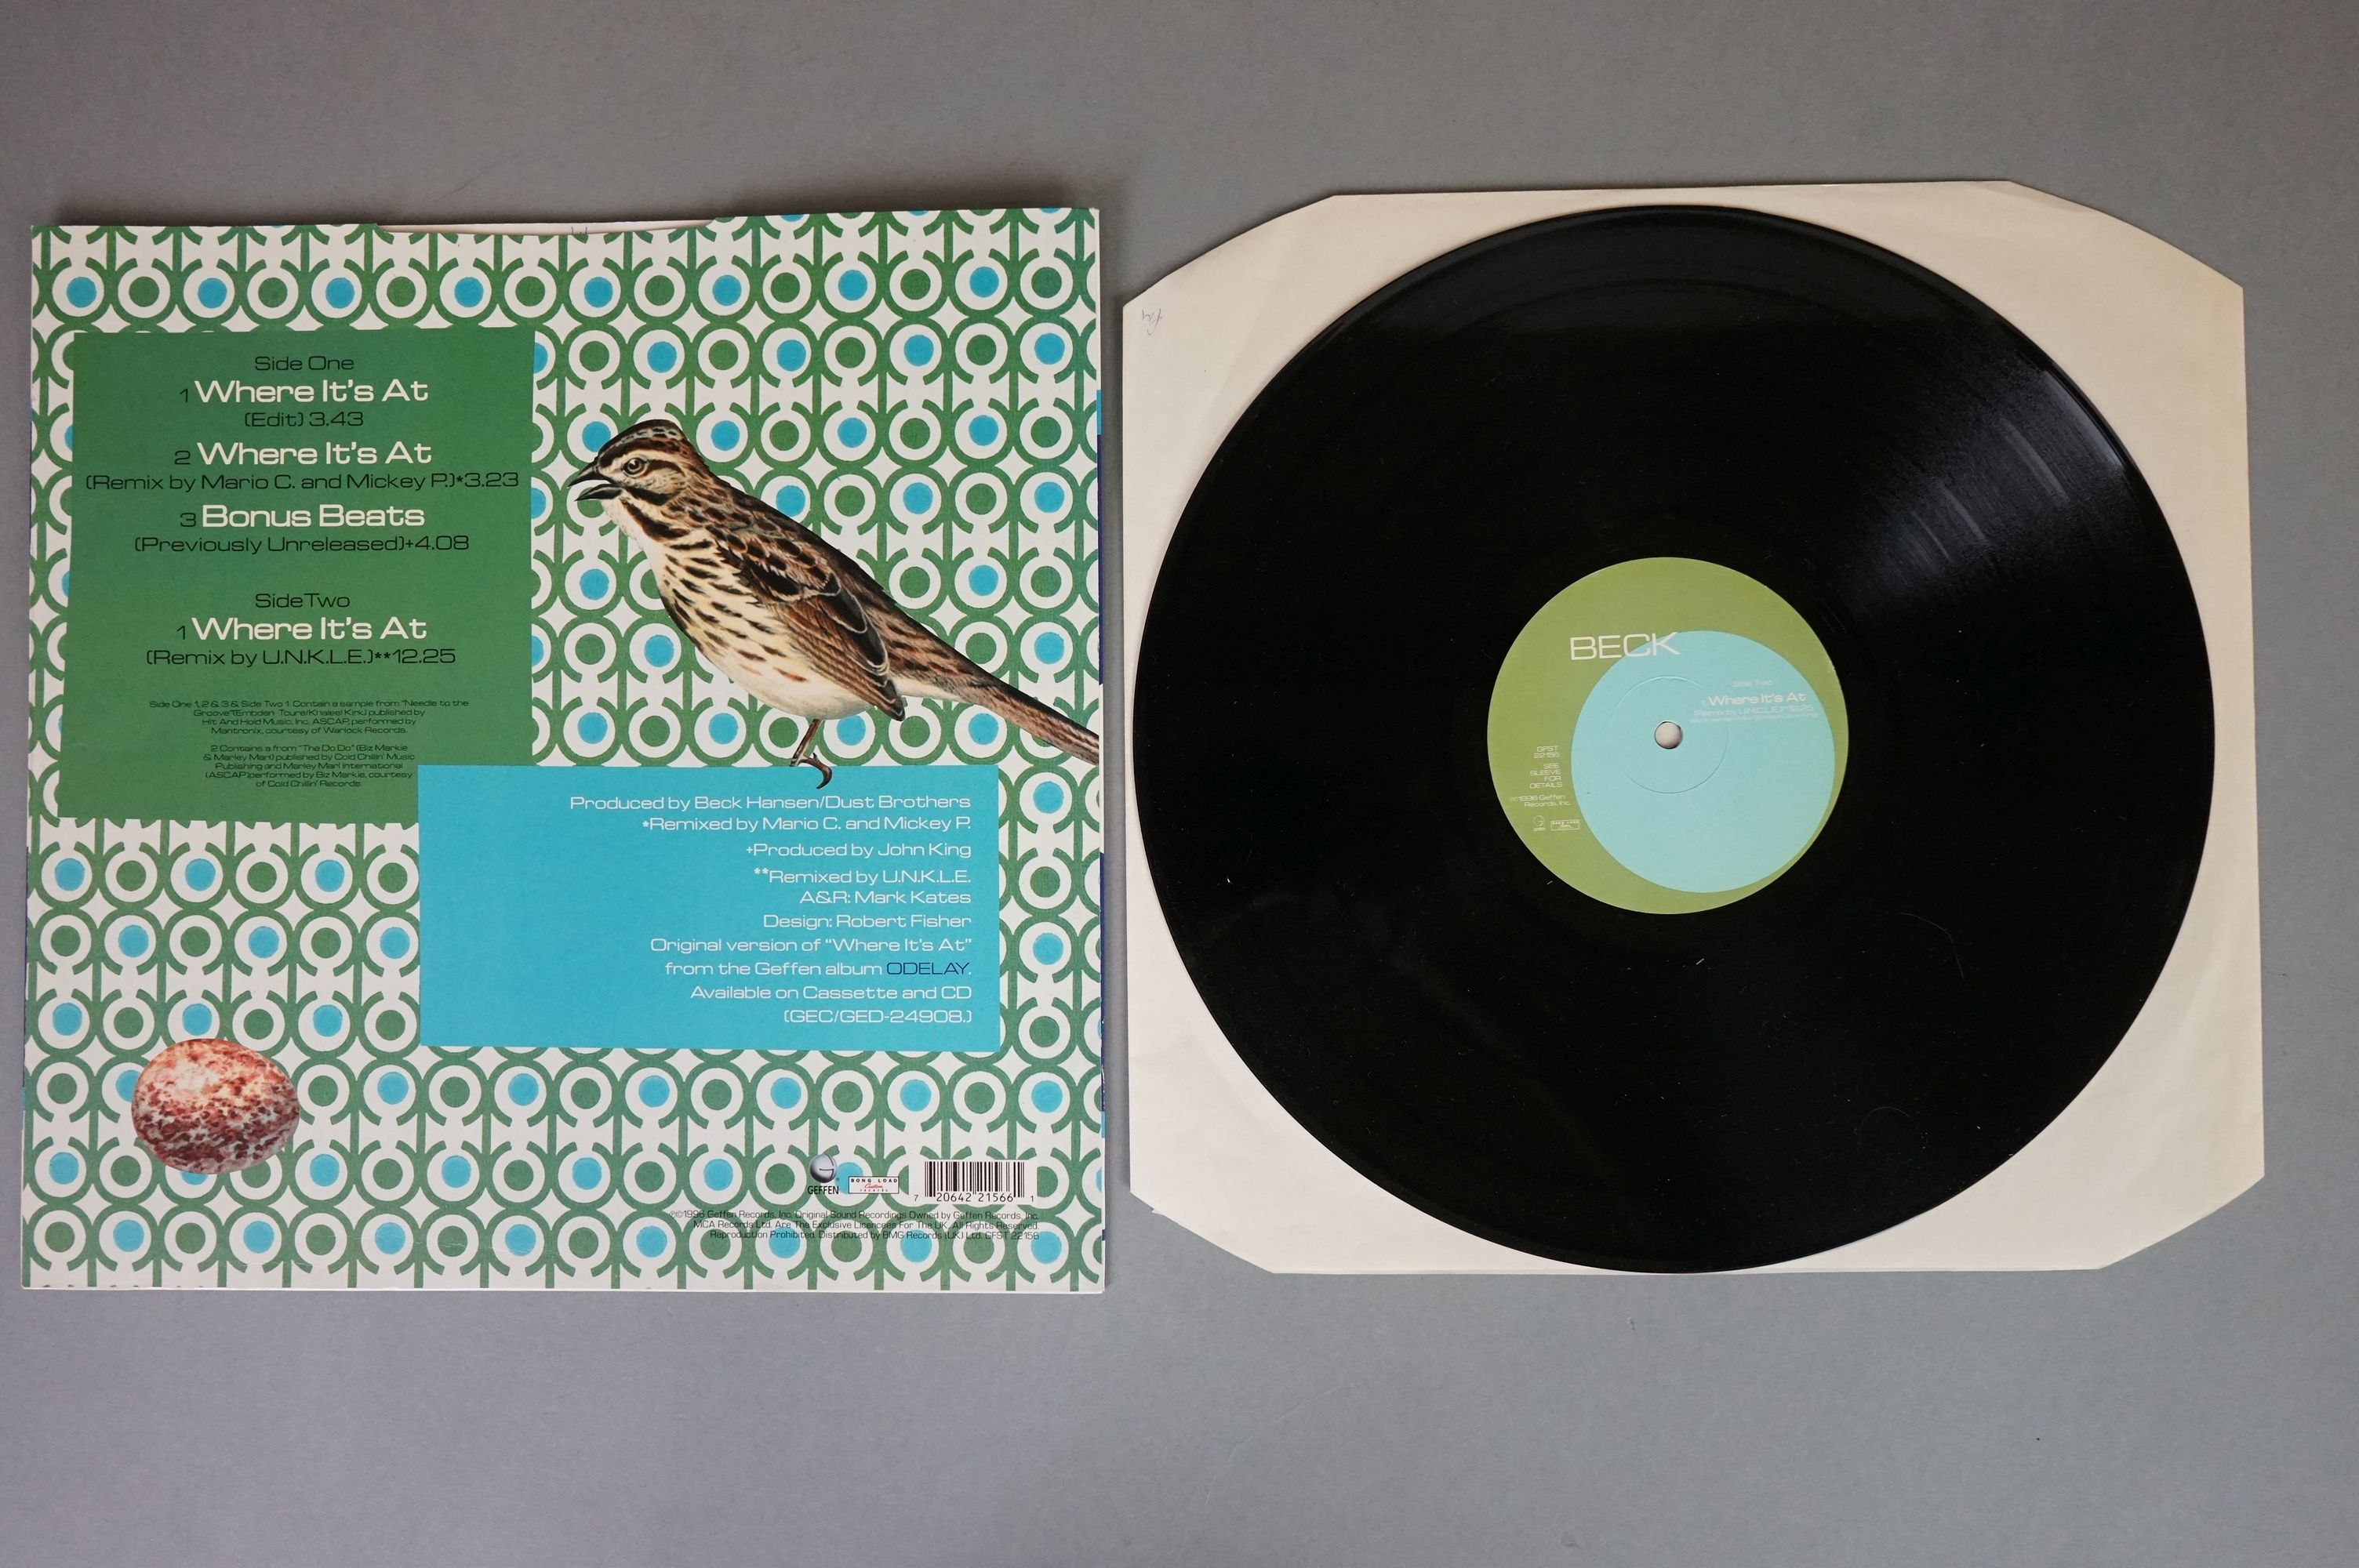 """Vinyl - Beck - Two 12"""" singles to include Loser BL5 and Where It's At, both vg+ with vendor initials - Image 6 of 6"""